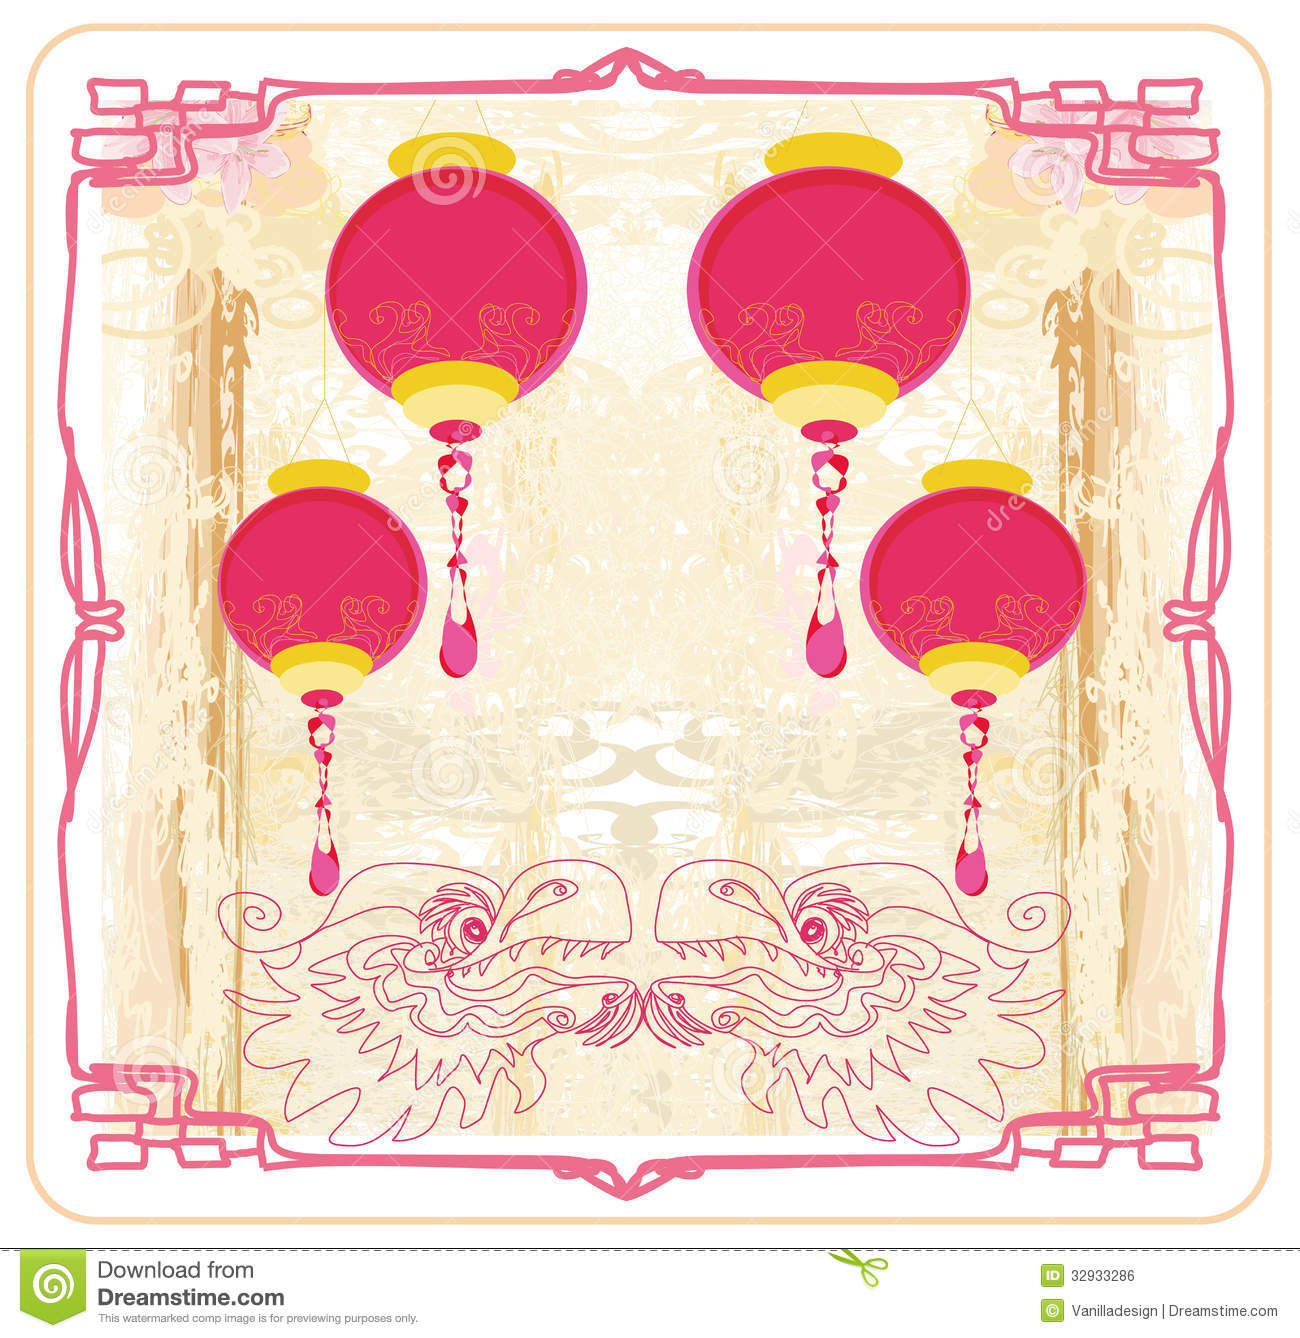 How To Bring Good Luck Magnificent With Lanterns will bring good luck and peace to prayer during MidAutumn  Picture